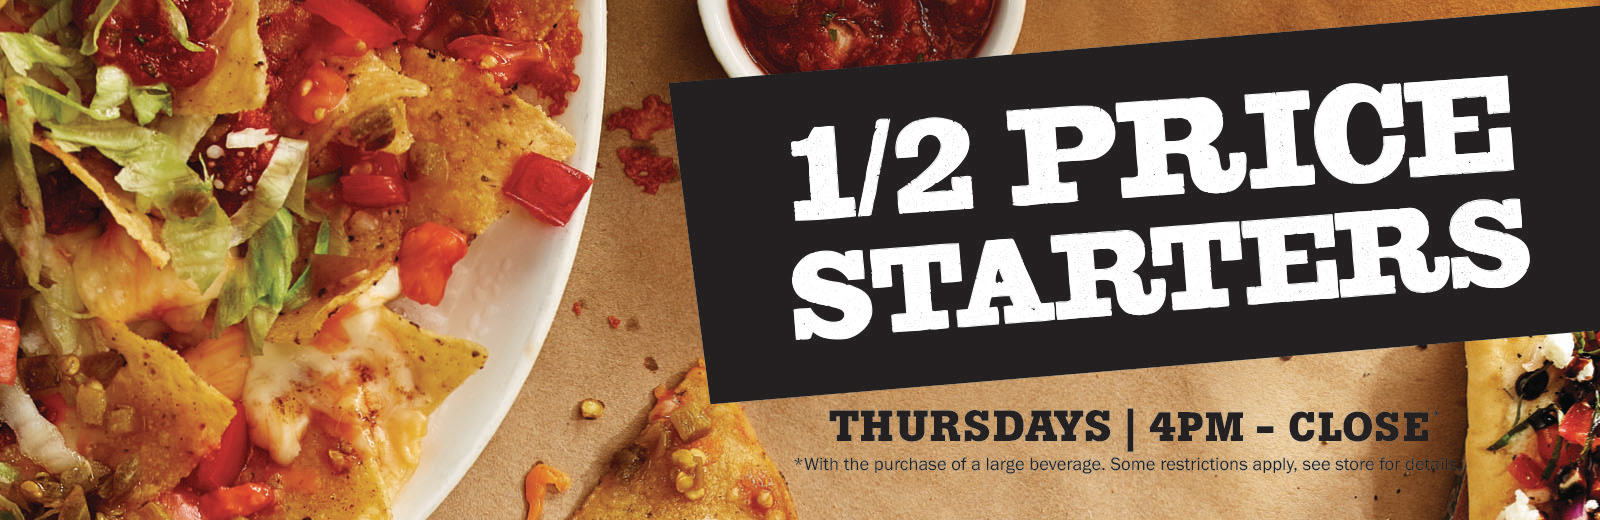 Thursday-half-price-starters